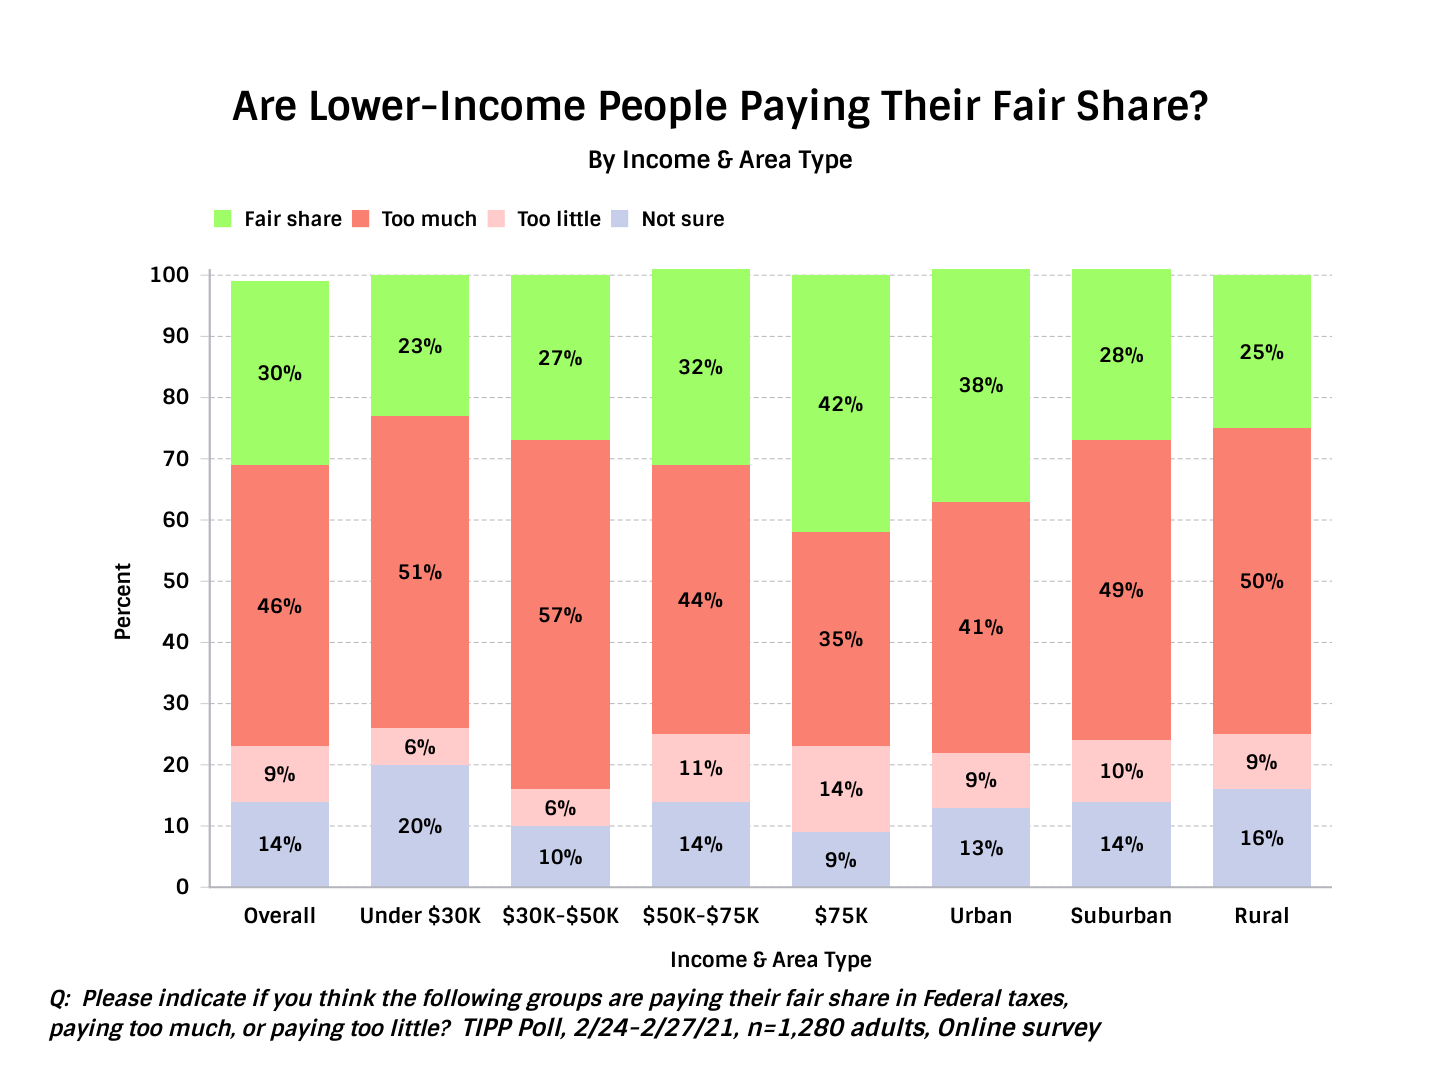 Are Lower-Income People Paying Their Fair Share - Chart